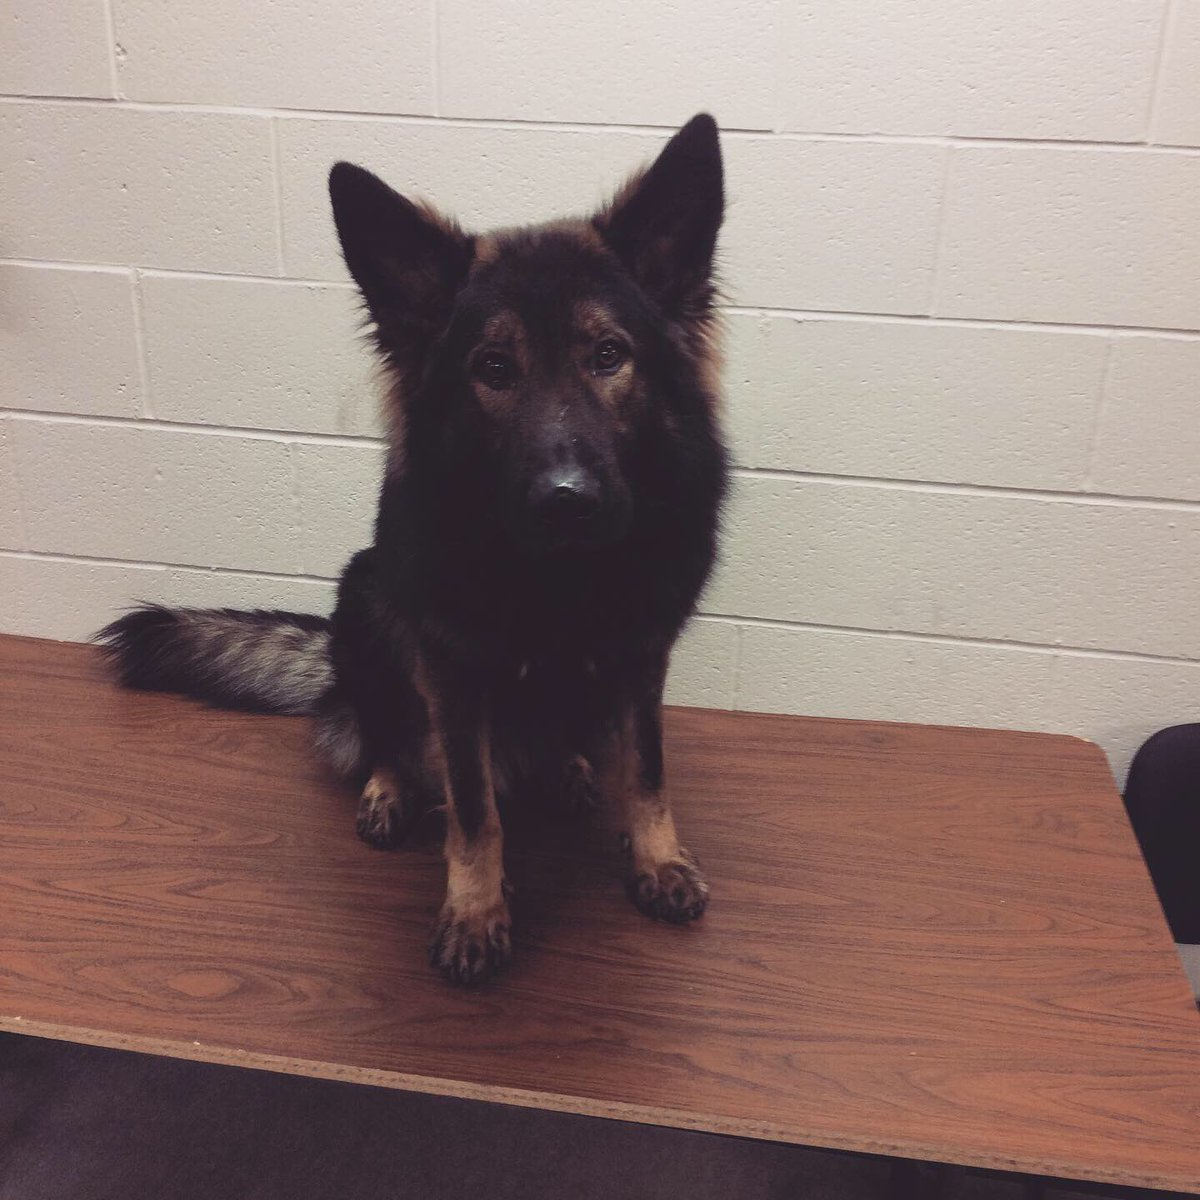 Drive drunk, crash your vehicle, run away and hide under a trailer. Yes we train for that. PSD Havoc with the track and capture. #germanshepherd #policedog #k9 #jail<br>http://pic.twitter.com/CVKNuiuBpQ